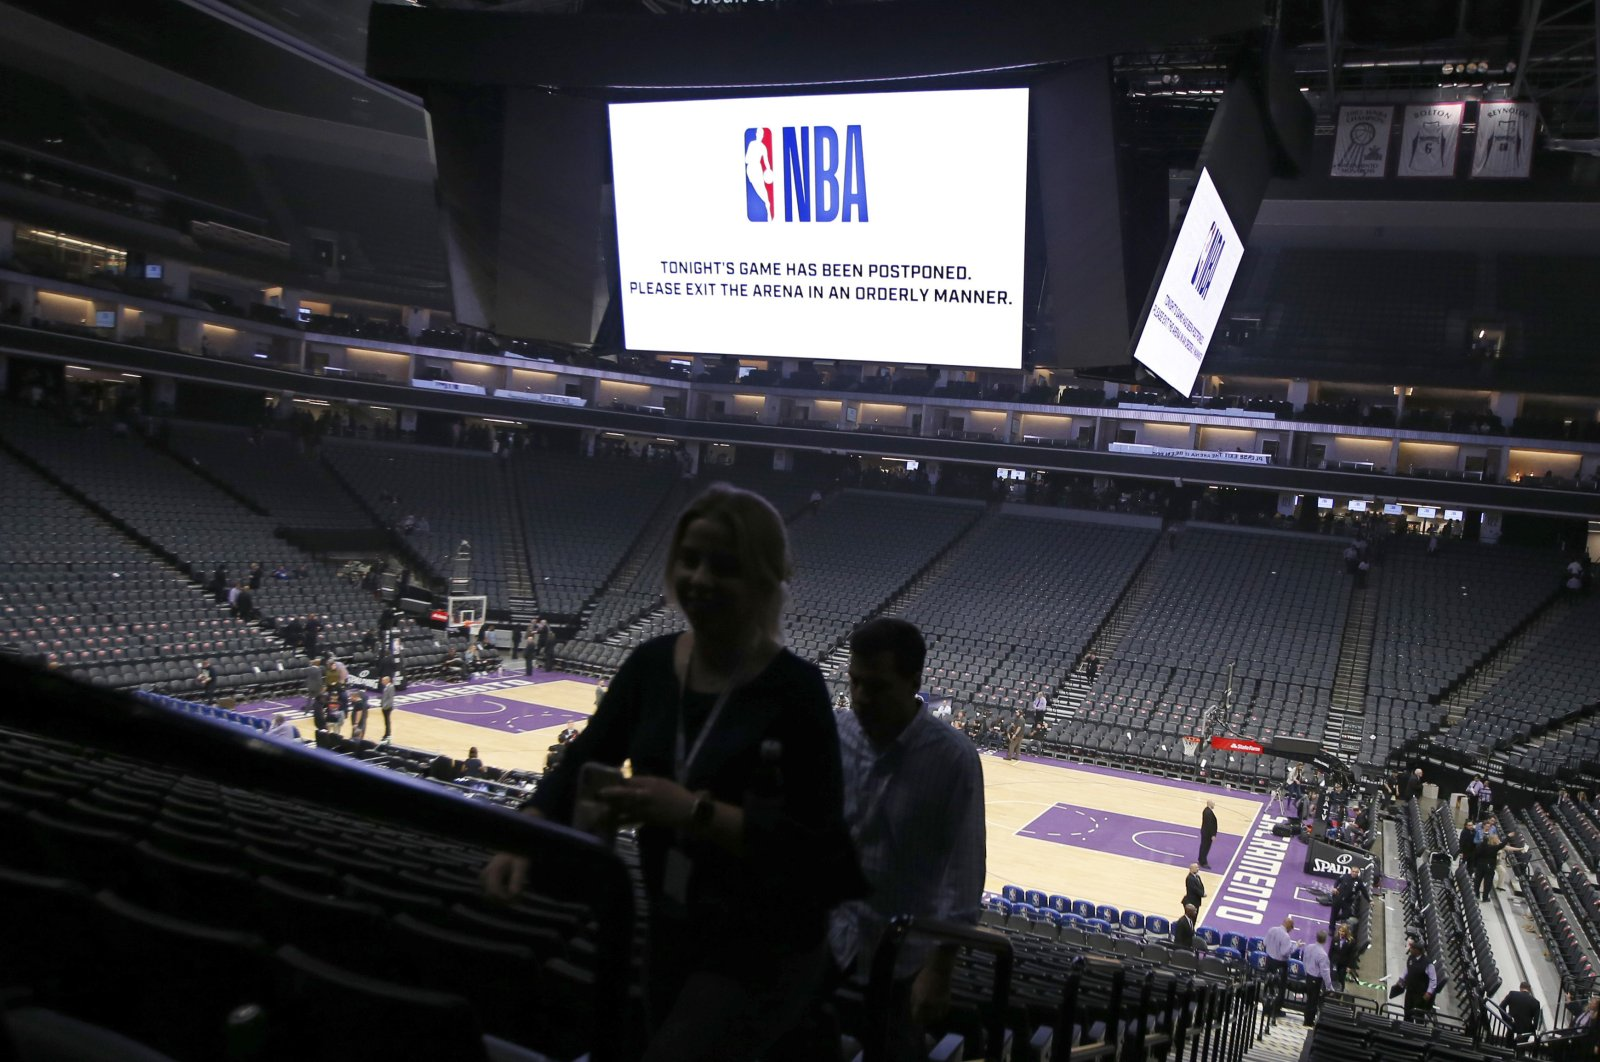 """Fans leave the Golden 1 Center in Sacramento, Calif. after the NBA basketball game between the New Orleans Pelicans and Sacramento Kings was postponed at the last minute over an """"abundance of caution"""" after a player for the Jazz tested positive for the coronavirus, March 11, 2020 photo. (AP Photo)"""